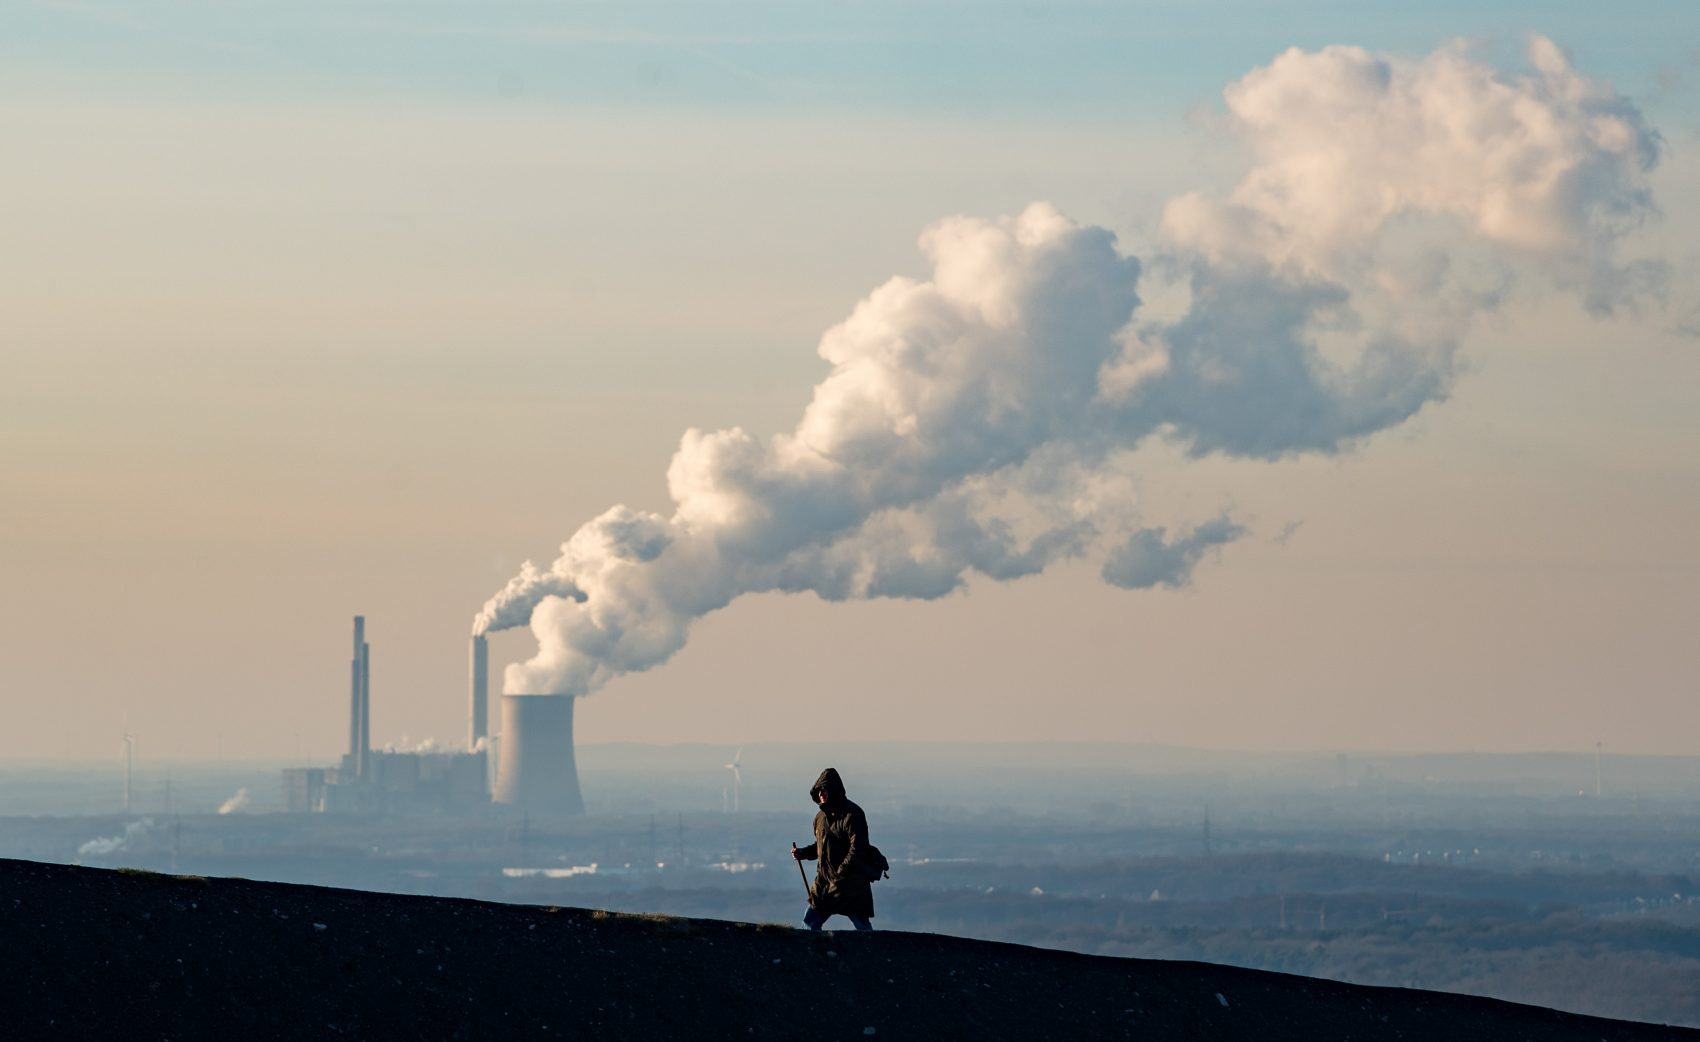 Steam and exhaust rise from a power plant on Jan. 6, 2017 in Oberhausen, Germany. According to a report released by the European Copernicus Climate Change Service, 2016 is likely to have been the hottest year since global temperatures were recorded in the 19th century. (Lukas Schulze/Getty Images)